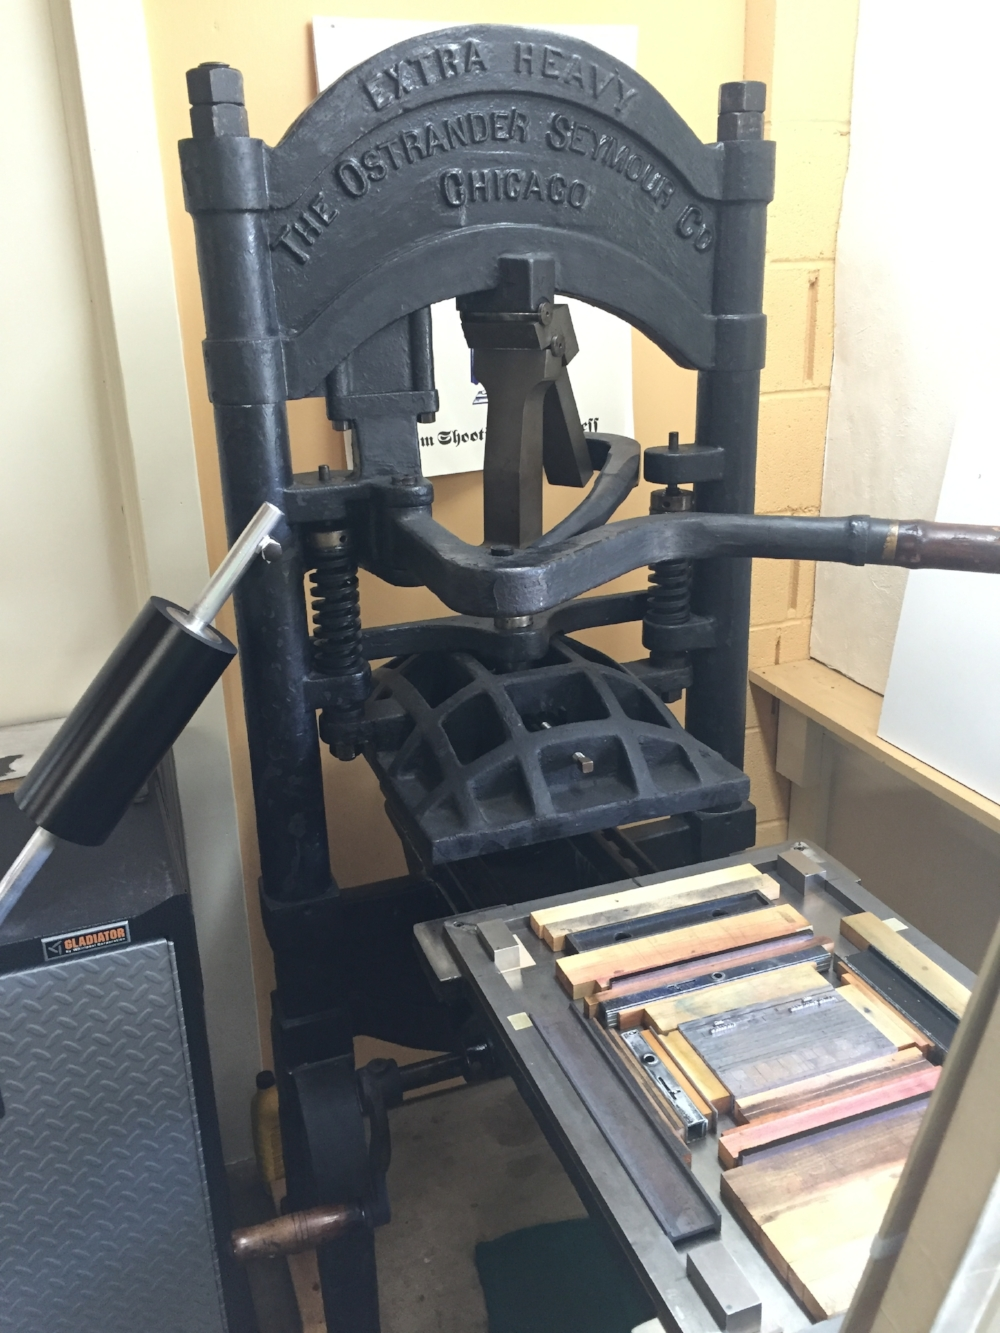 Printing the book on our circa-1915 Ostrander-Seymour iron handpress